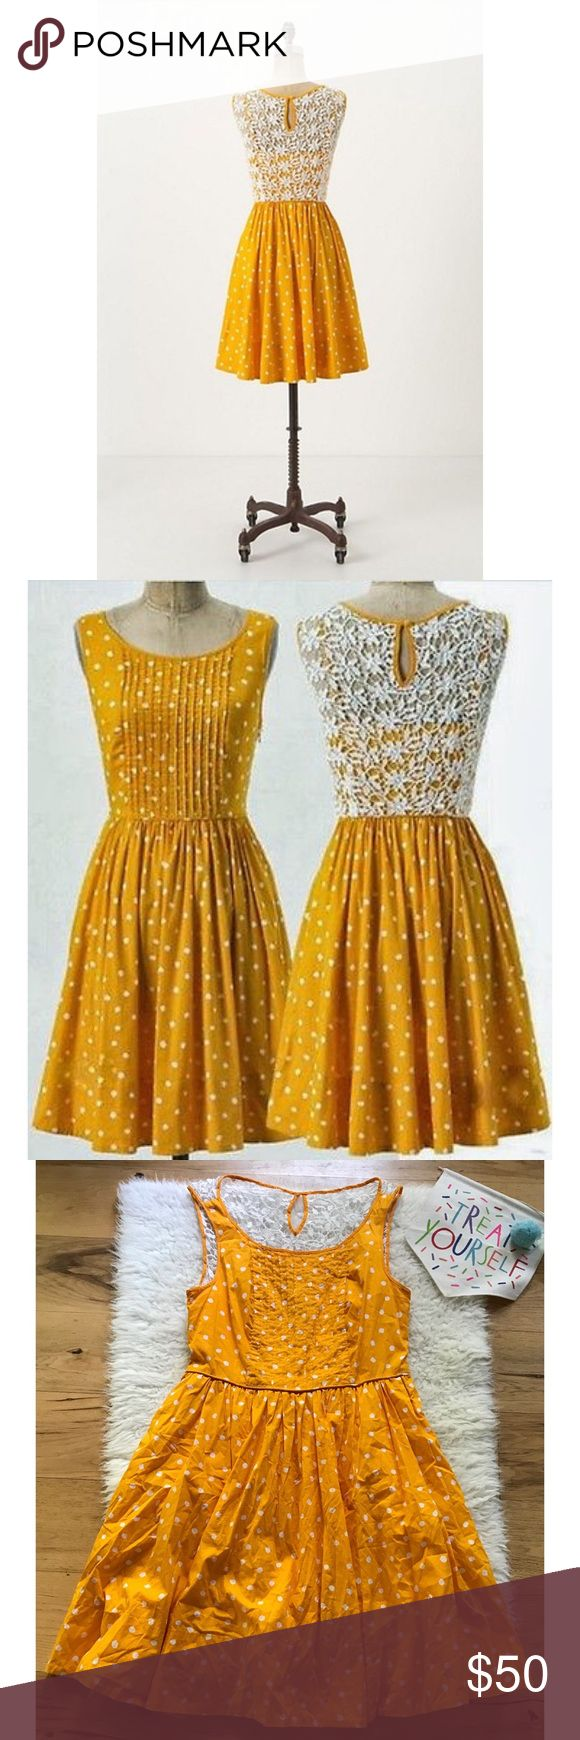 """EUC Moulinette Soeurs Melora Dots Lace Dress Gorgeous dress from Anthropologie in size 10. Lace detail in the back with keyhole closured, hidden side zipper. Lined. No flaws. In a marigold yellowish  orange color. Measure about 36"""" length, 15"""" waist, 16.5"""" pit to pit, 20.5"""" from waist to bottom. ❌No trades ormodeling. Open to reasonable offers. Bundle and save 15%. Thank you‼️ Anthropologie Dresses Mini"""